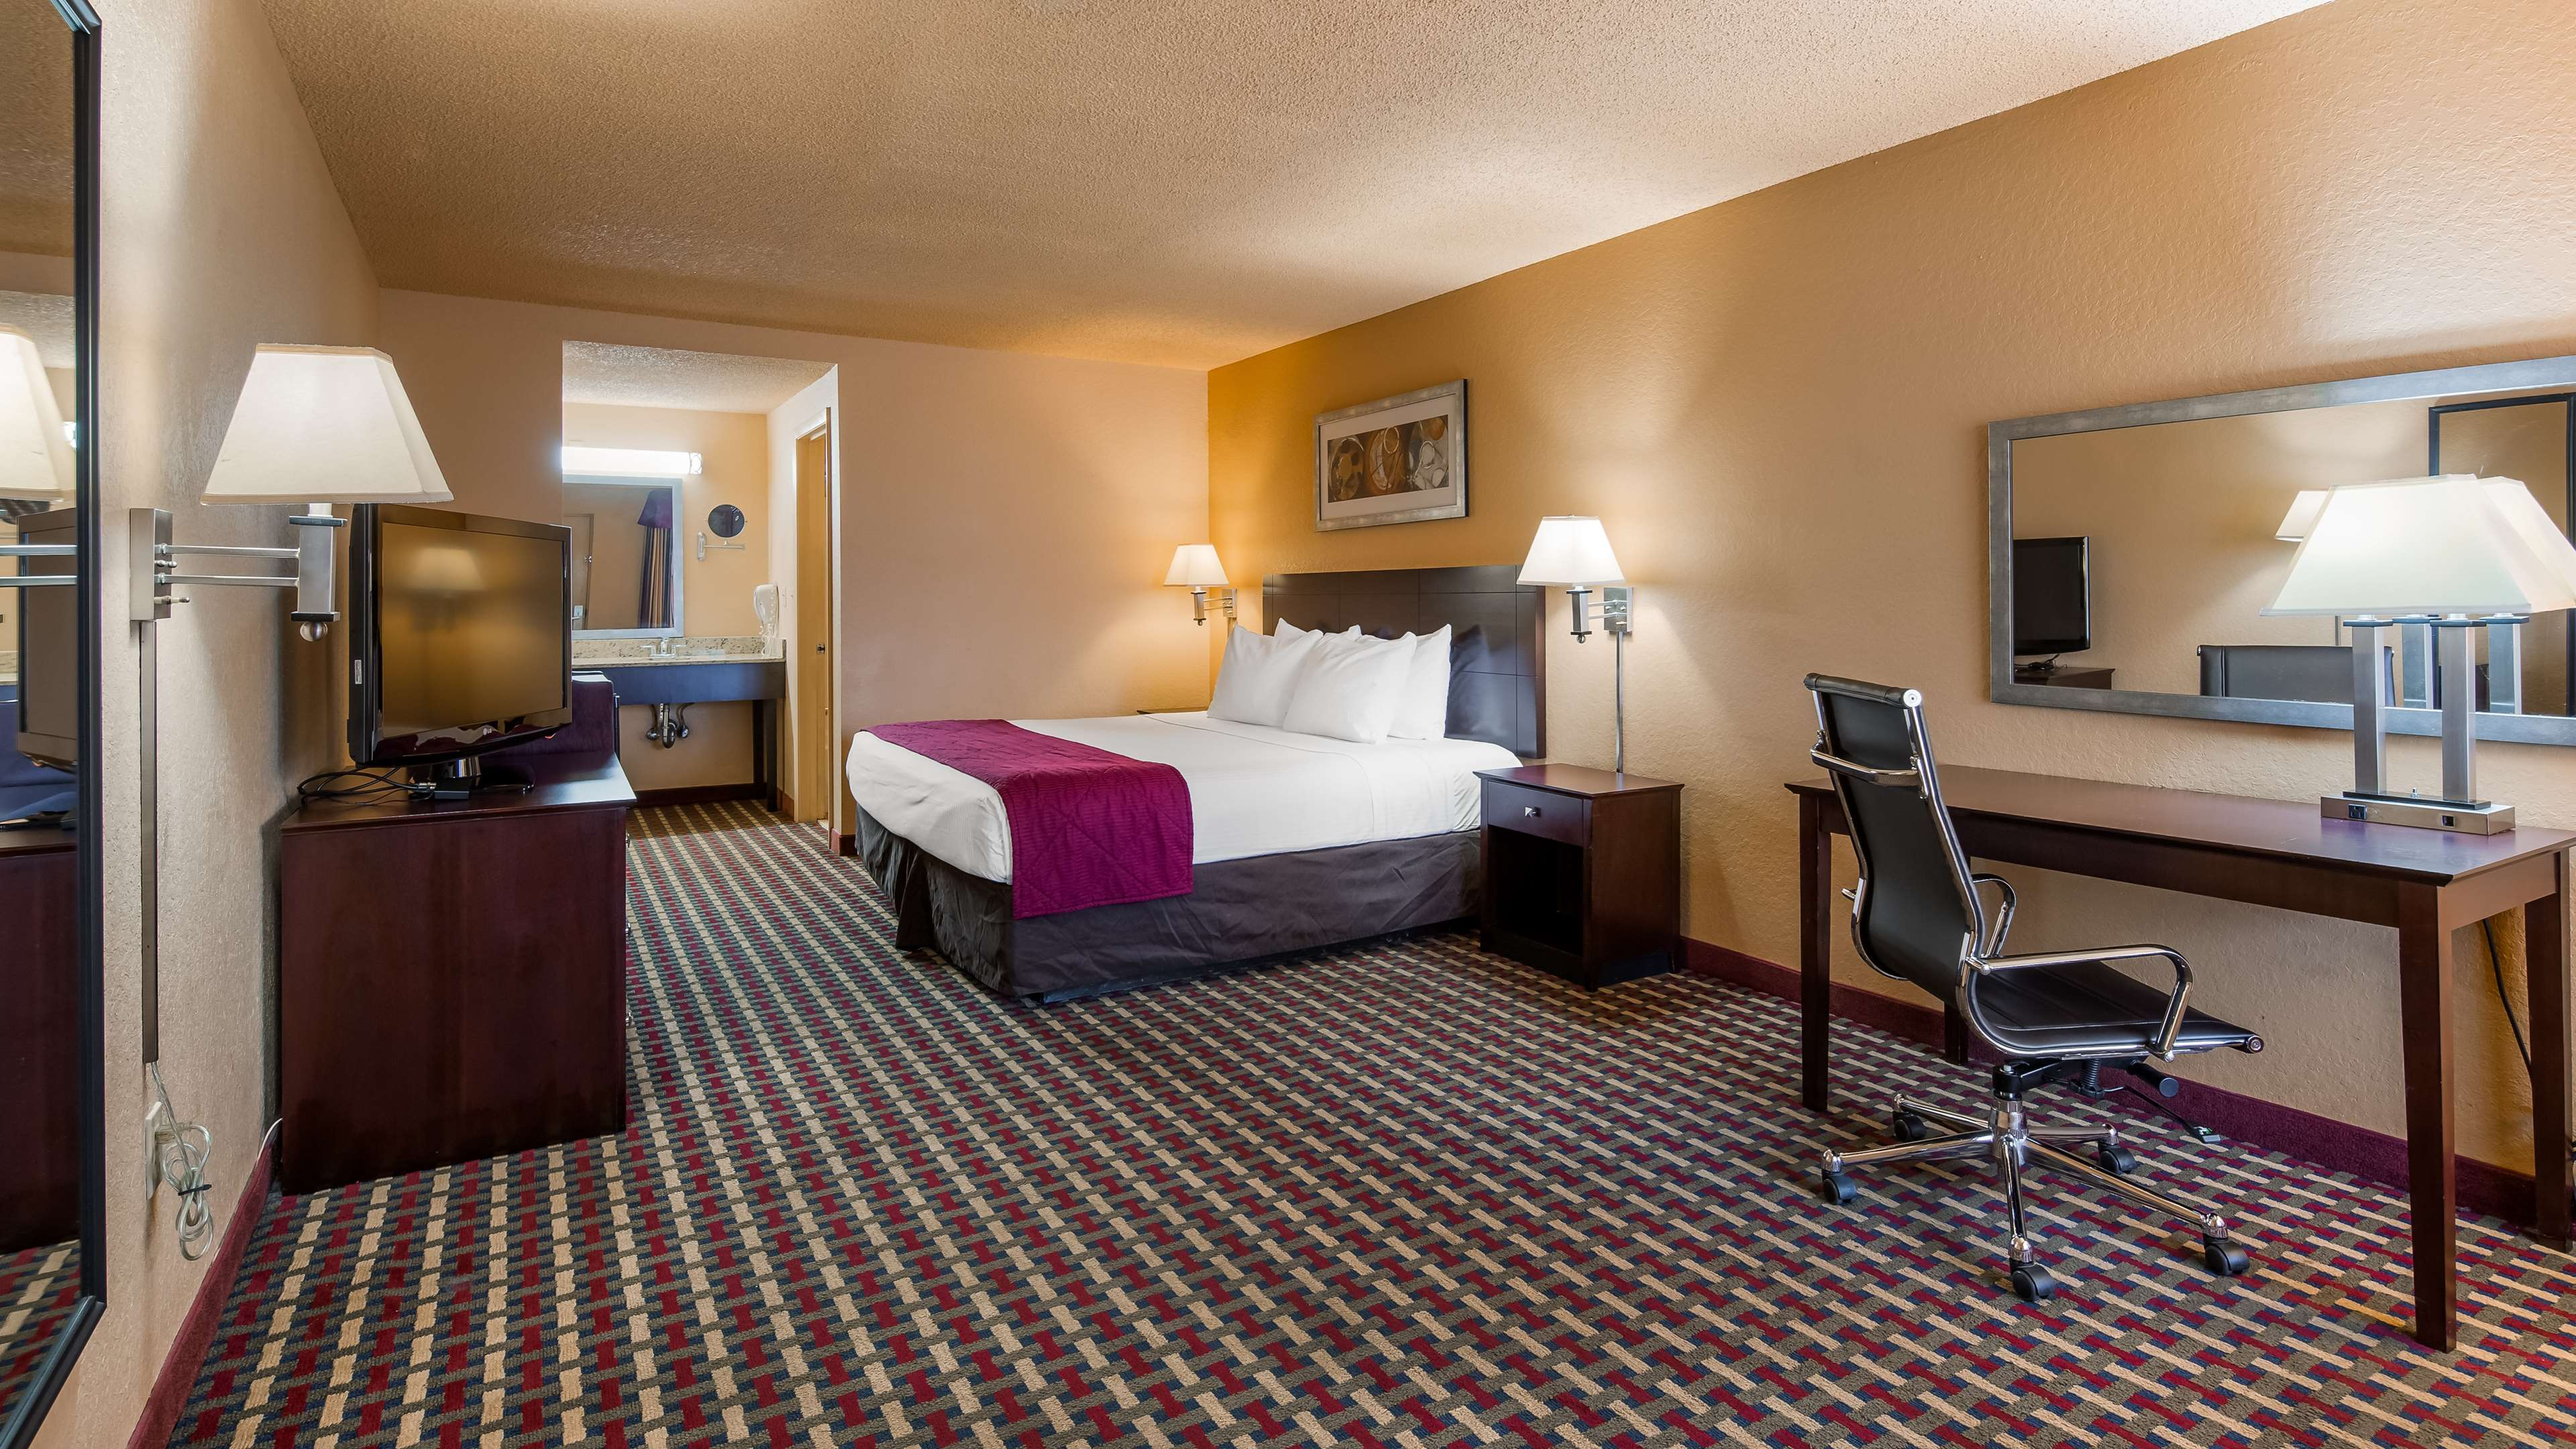 Best Western of Clewiston image 10